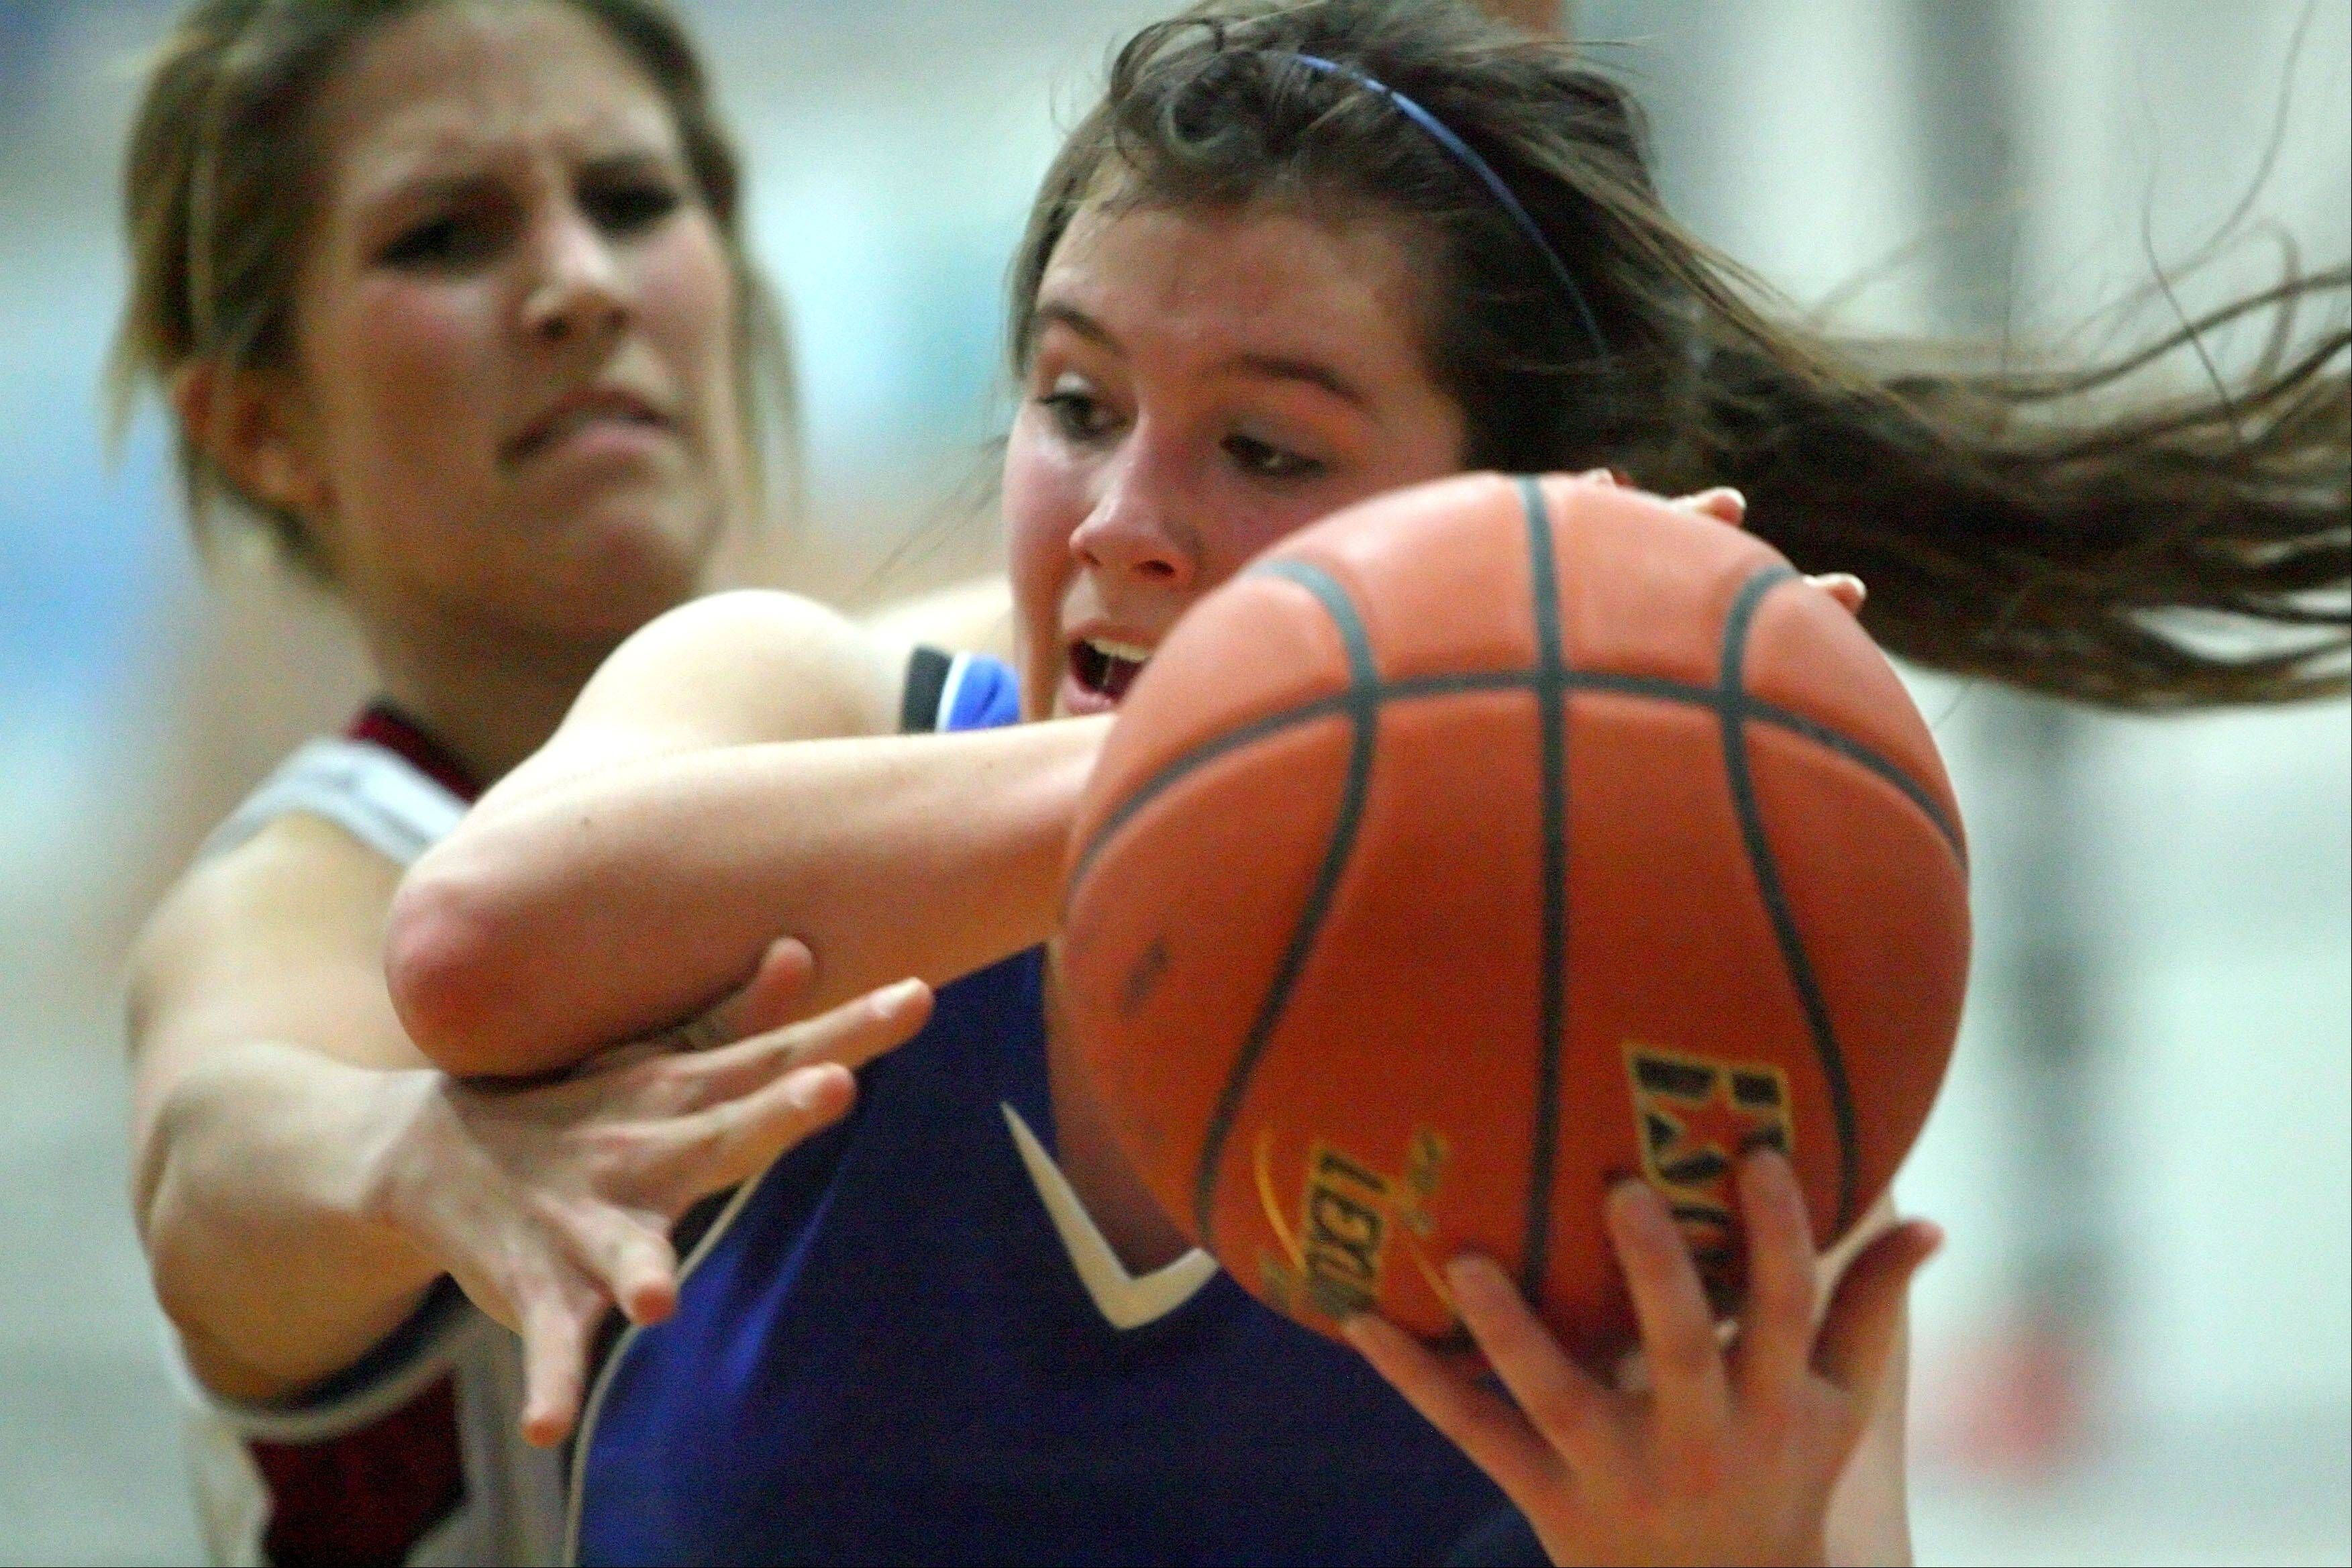 Antioch's Sarah Huebner, left, and Lakes' Nicole Mogged battle for a rebound during their game Tuesday night at Vernon Hills High School.